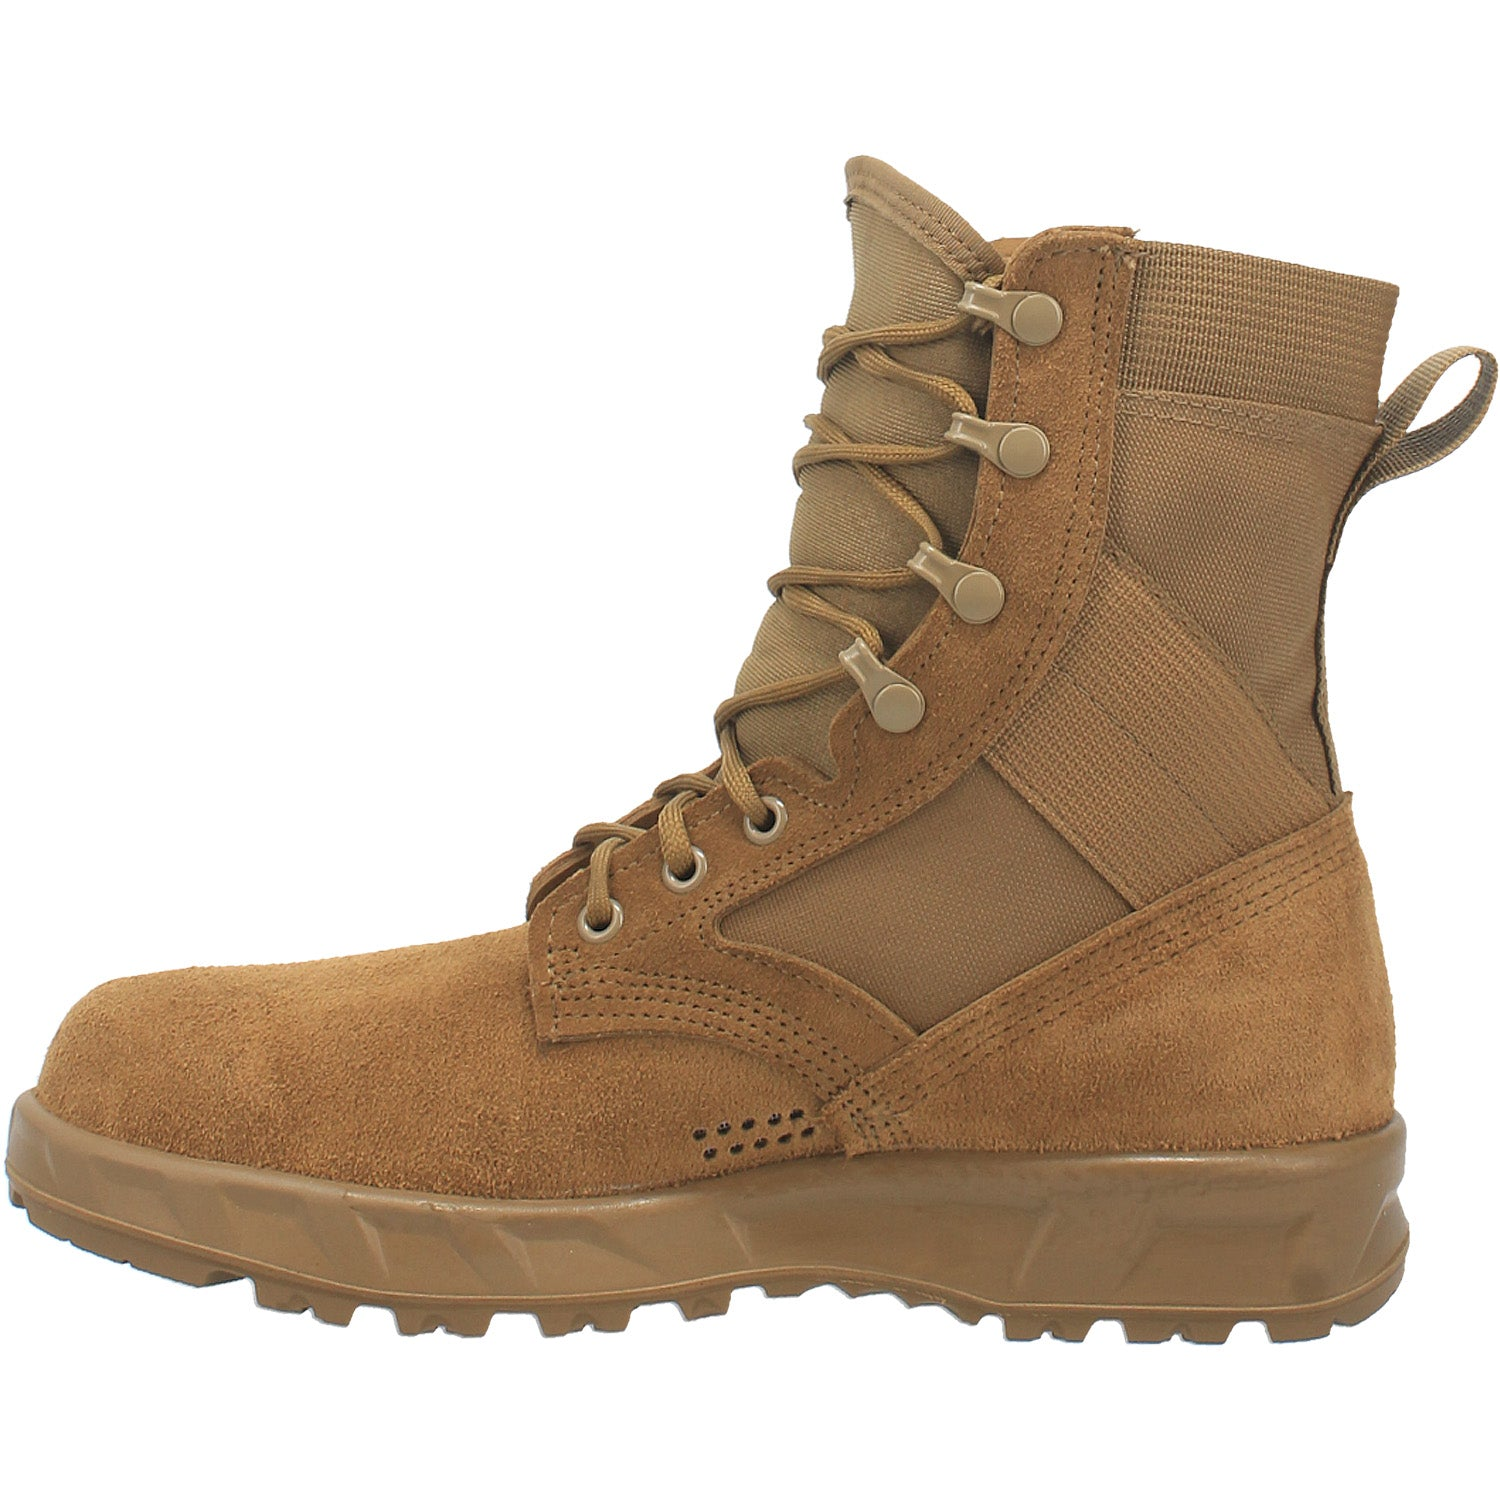 T2 Ultra Light Hot Weather Combat Boot 14940793208874